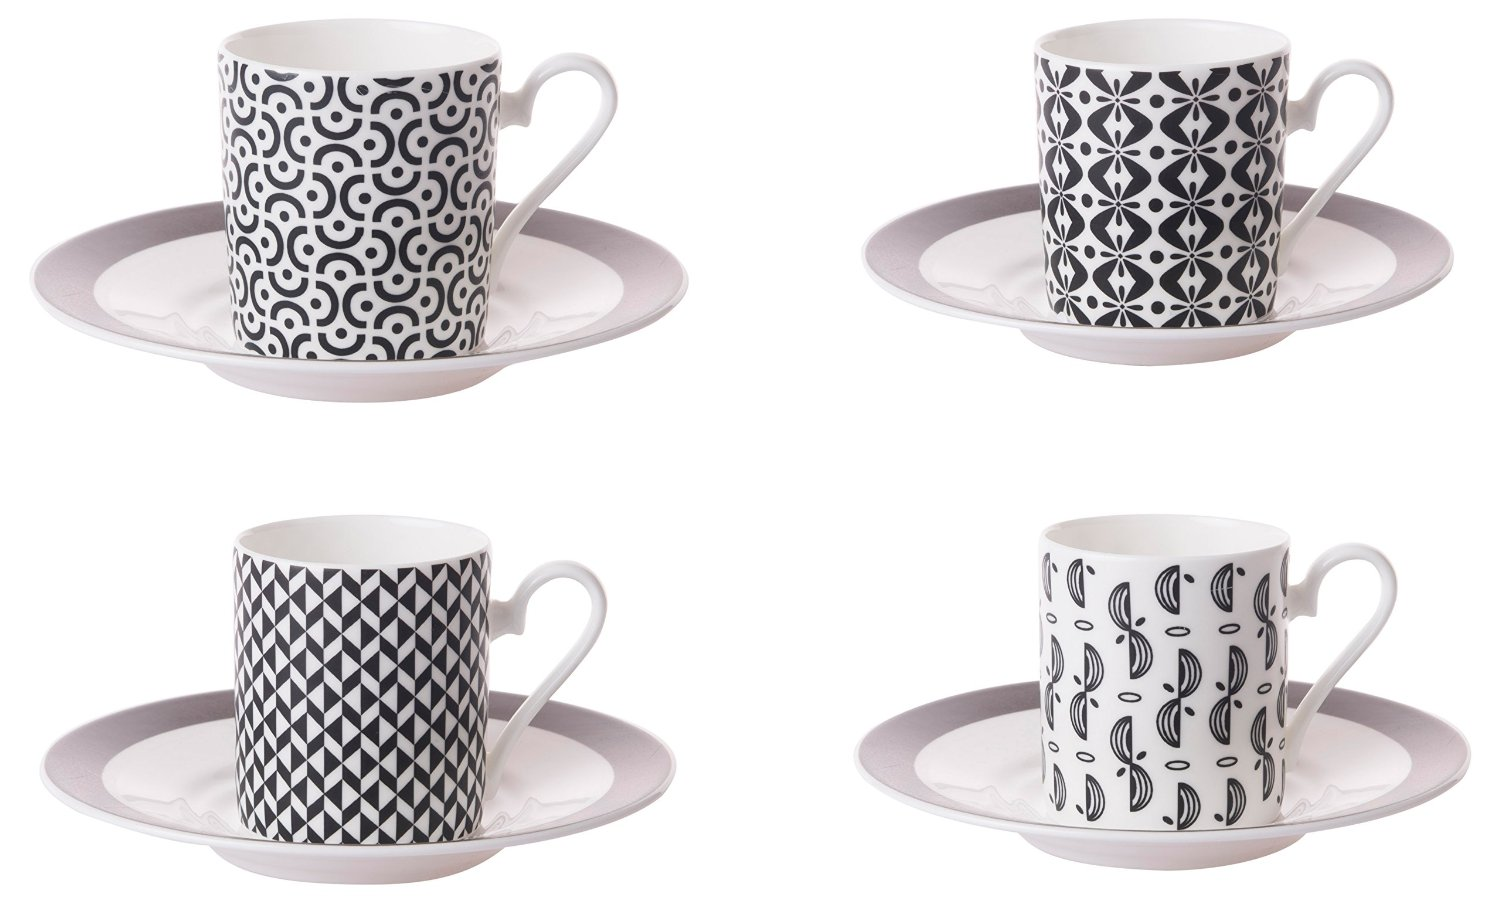 Small Coffee Cups And Saucers Details About Roy Kirkham Set Of 4 Primrose Bordier Small Coffee Cans Cups Saucers 200ml